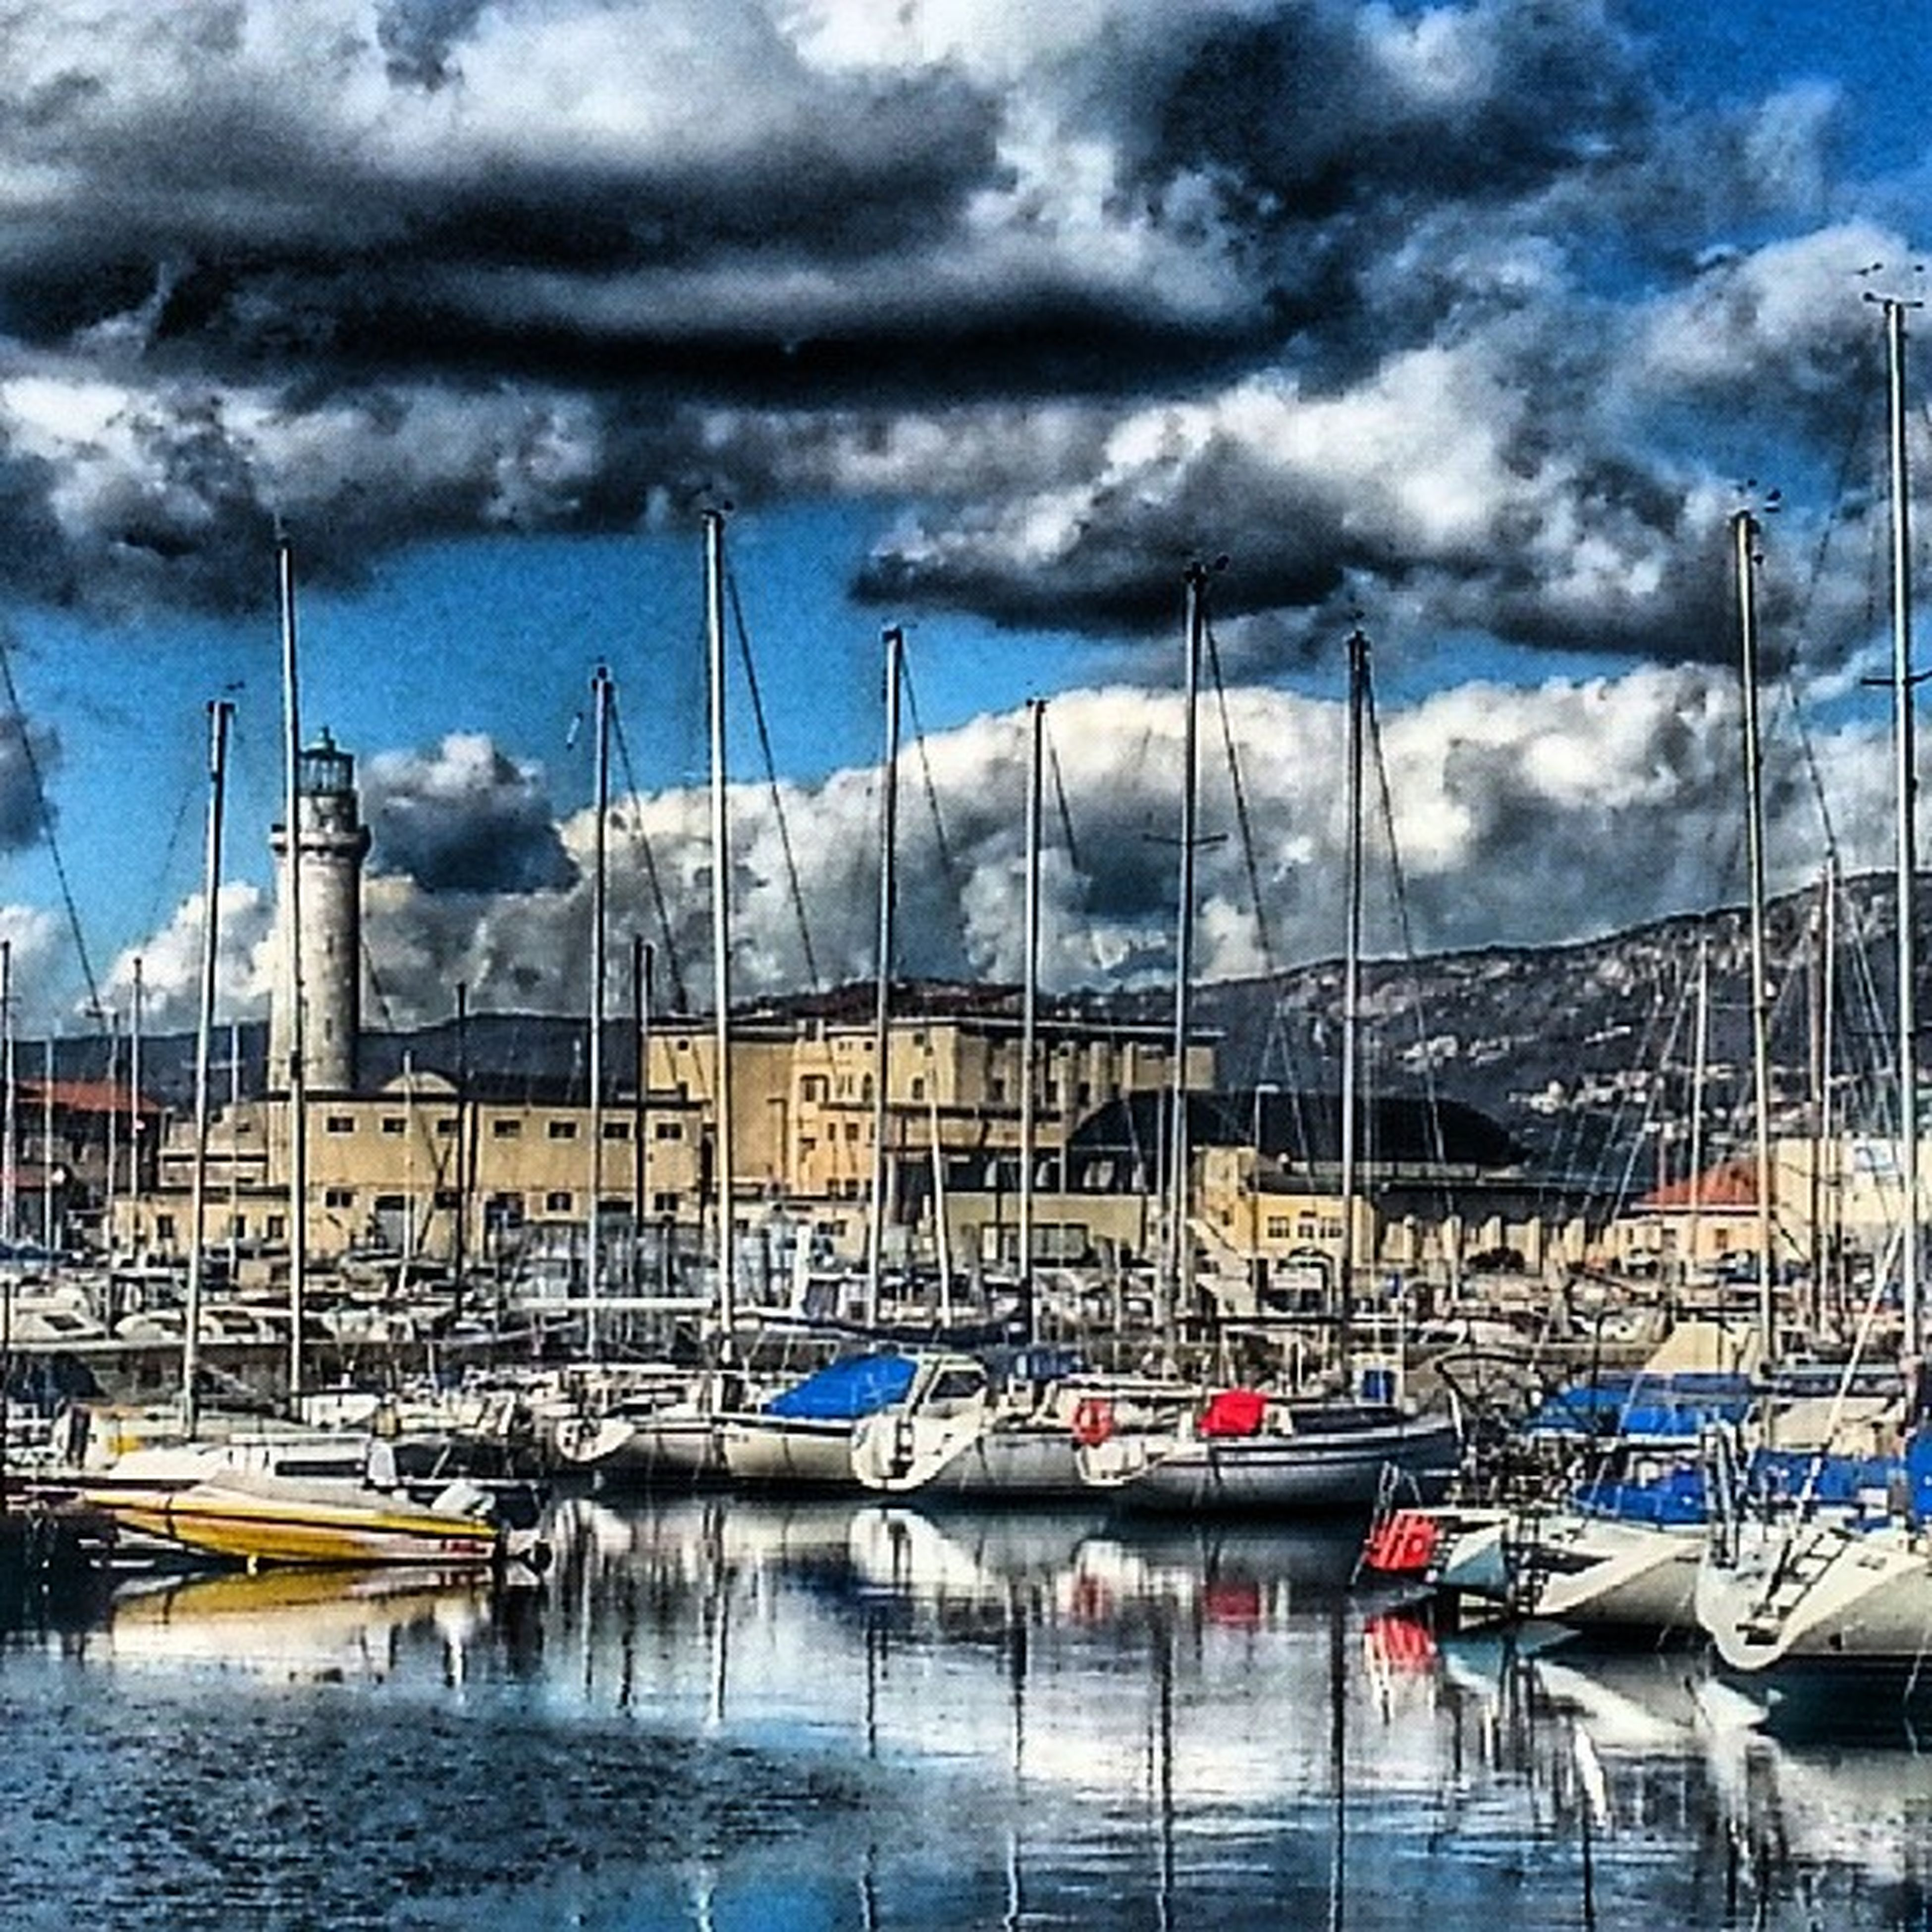 sky, nautical vessel, water, cloud - sky, moored, harbor, transportation, cloudy, waterfront, boat, mode of transport, cloud, mast, built structure, reflection, architecture, sailboat, building exterior, marina, in a row